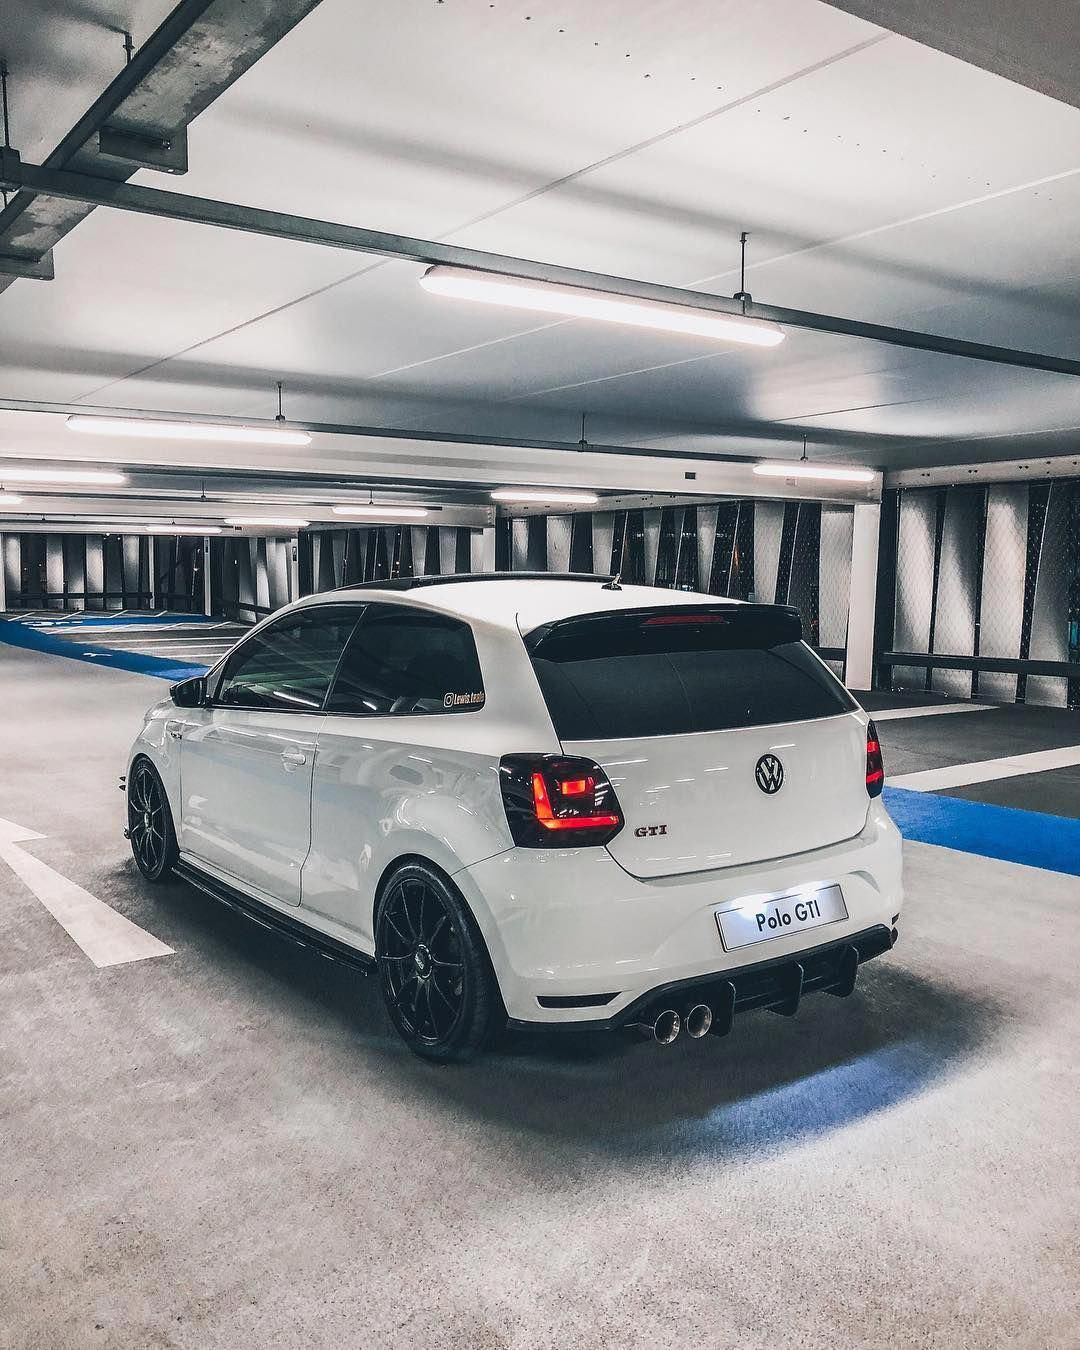 Best Car Park Lighting Ever Polo6cgti Lewis Teale On Instagram